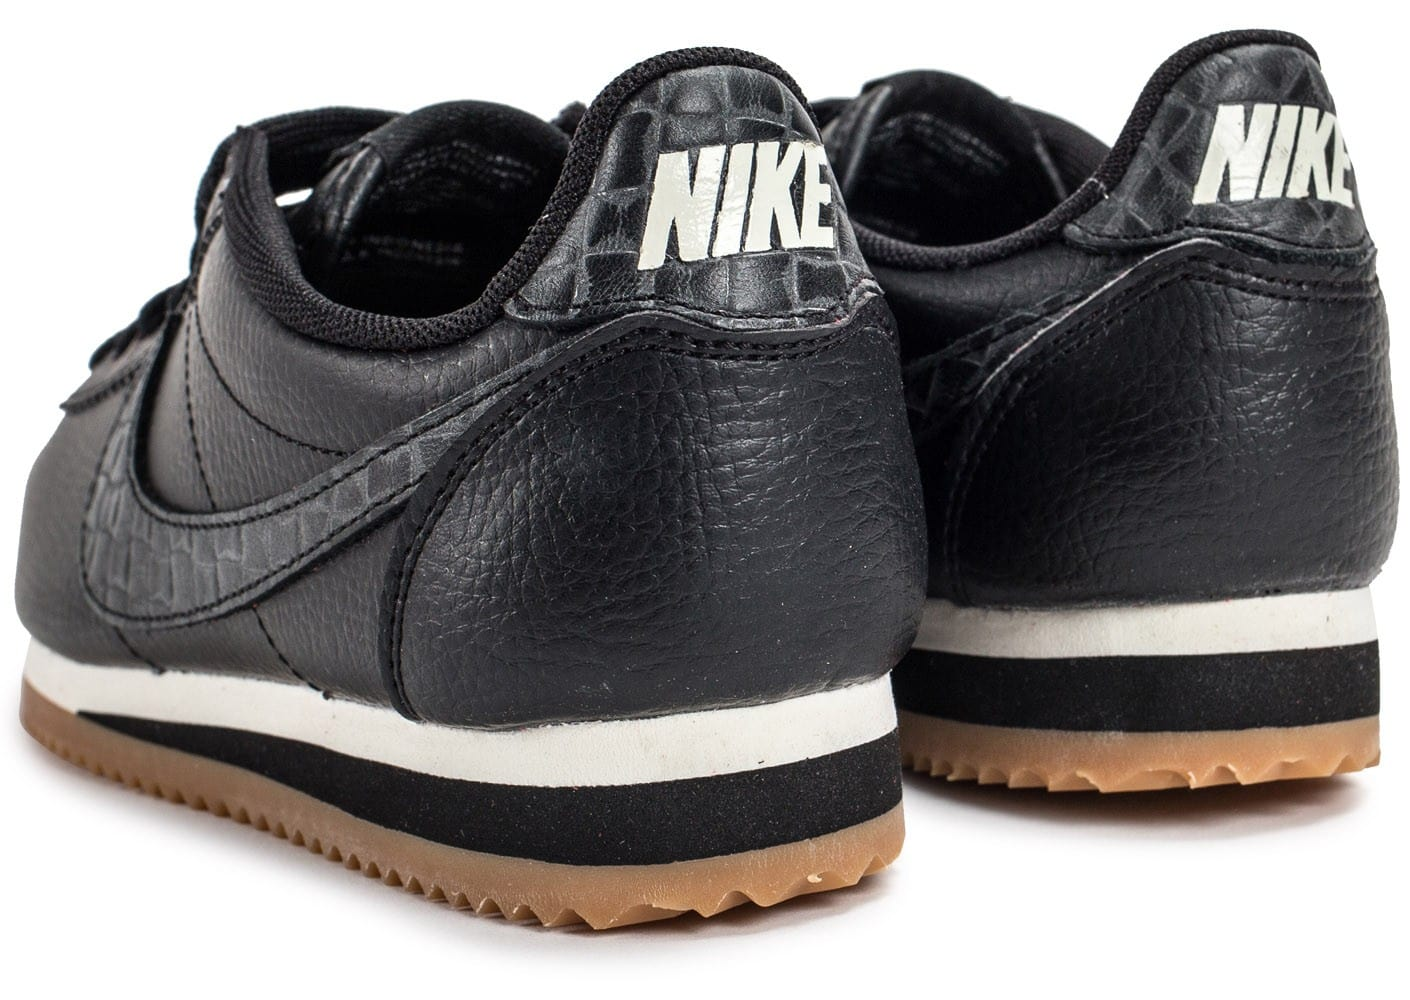 nike classic cortez leather lux chaussures femme chausport. Black Bedroom Furniture Sets. Home Design Ideas